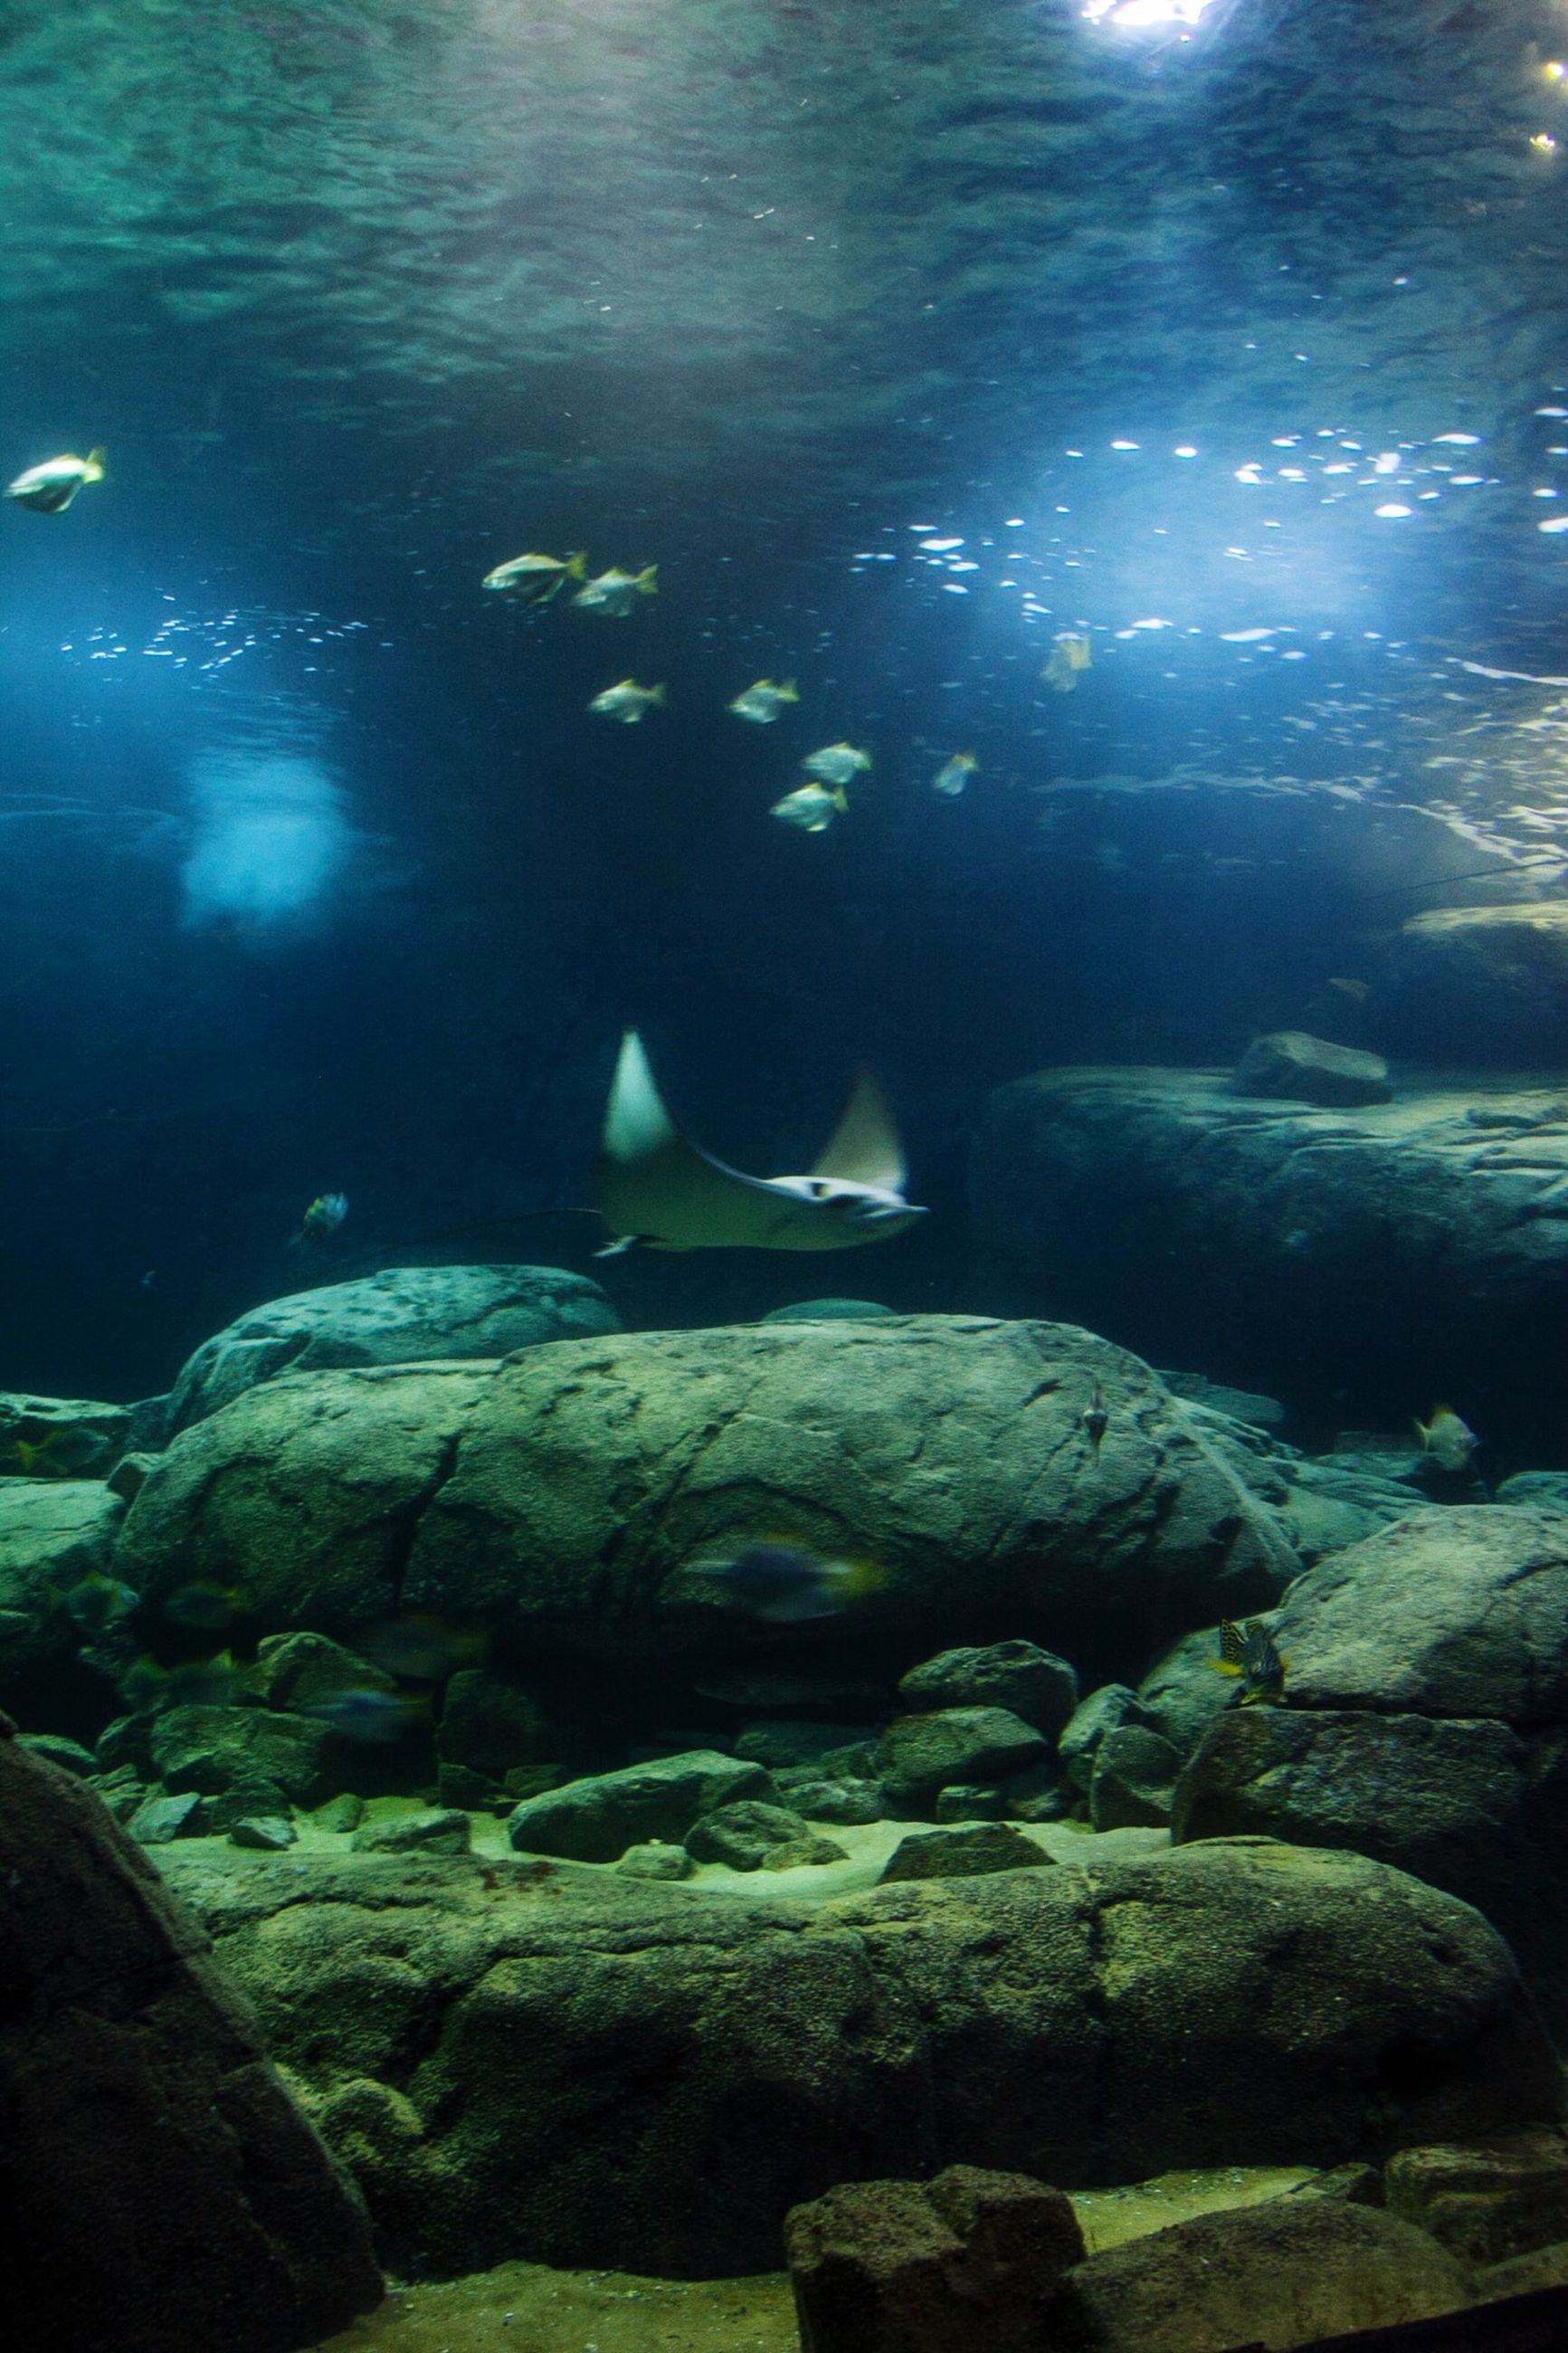 water, animal themes, rock - object, animals in the wild, swimming, wildlife, underwater, high angle view, nature, one animal, sea, sunlight, full length, rock, day, outdoors, men, fish